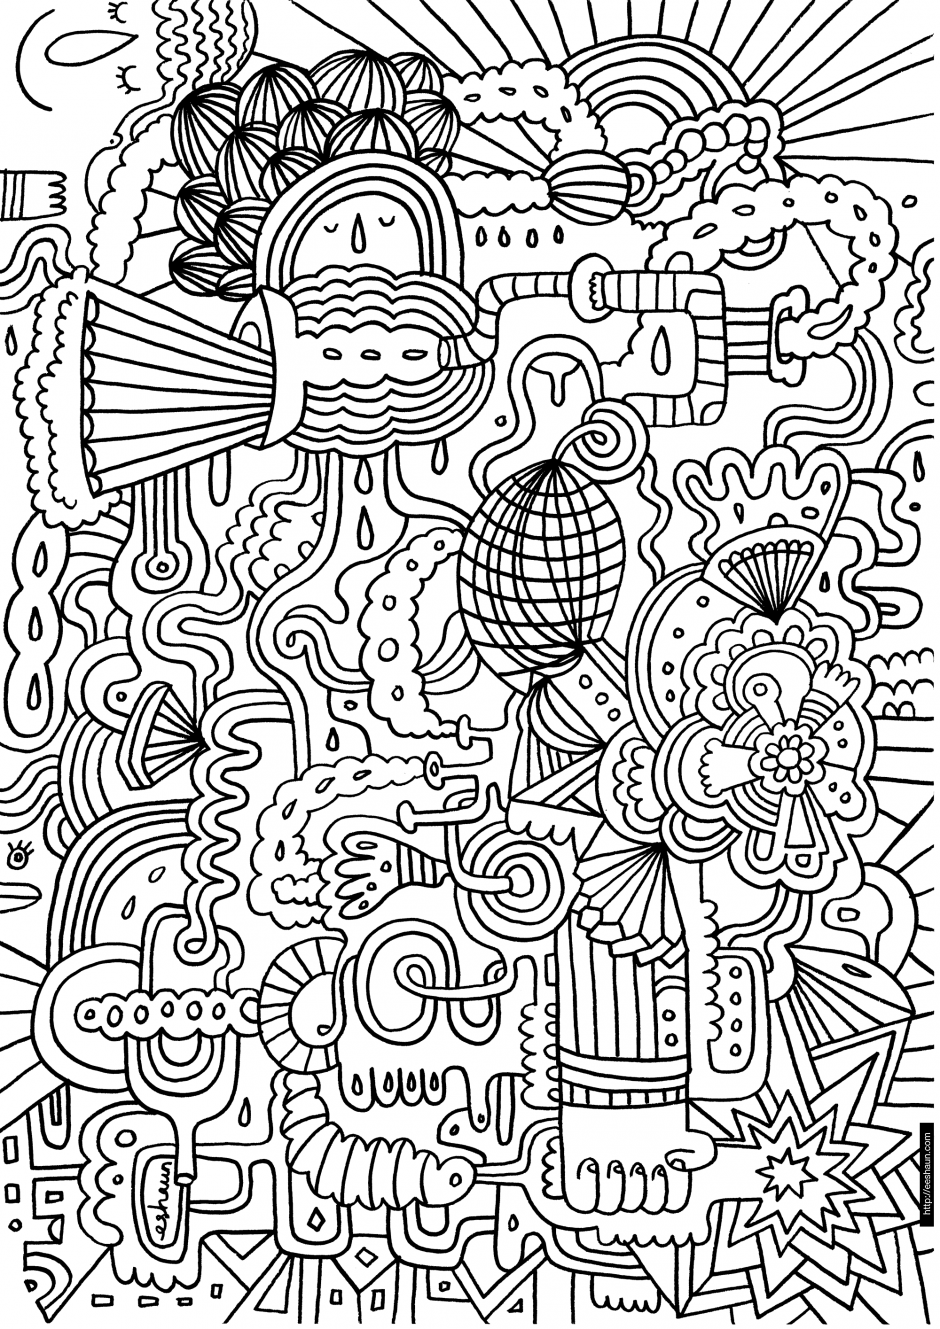 coloring pages of flowers for teenagers difficult | Only Coloring ...